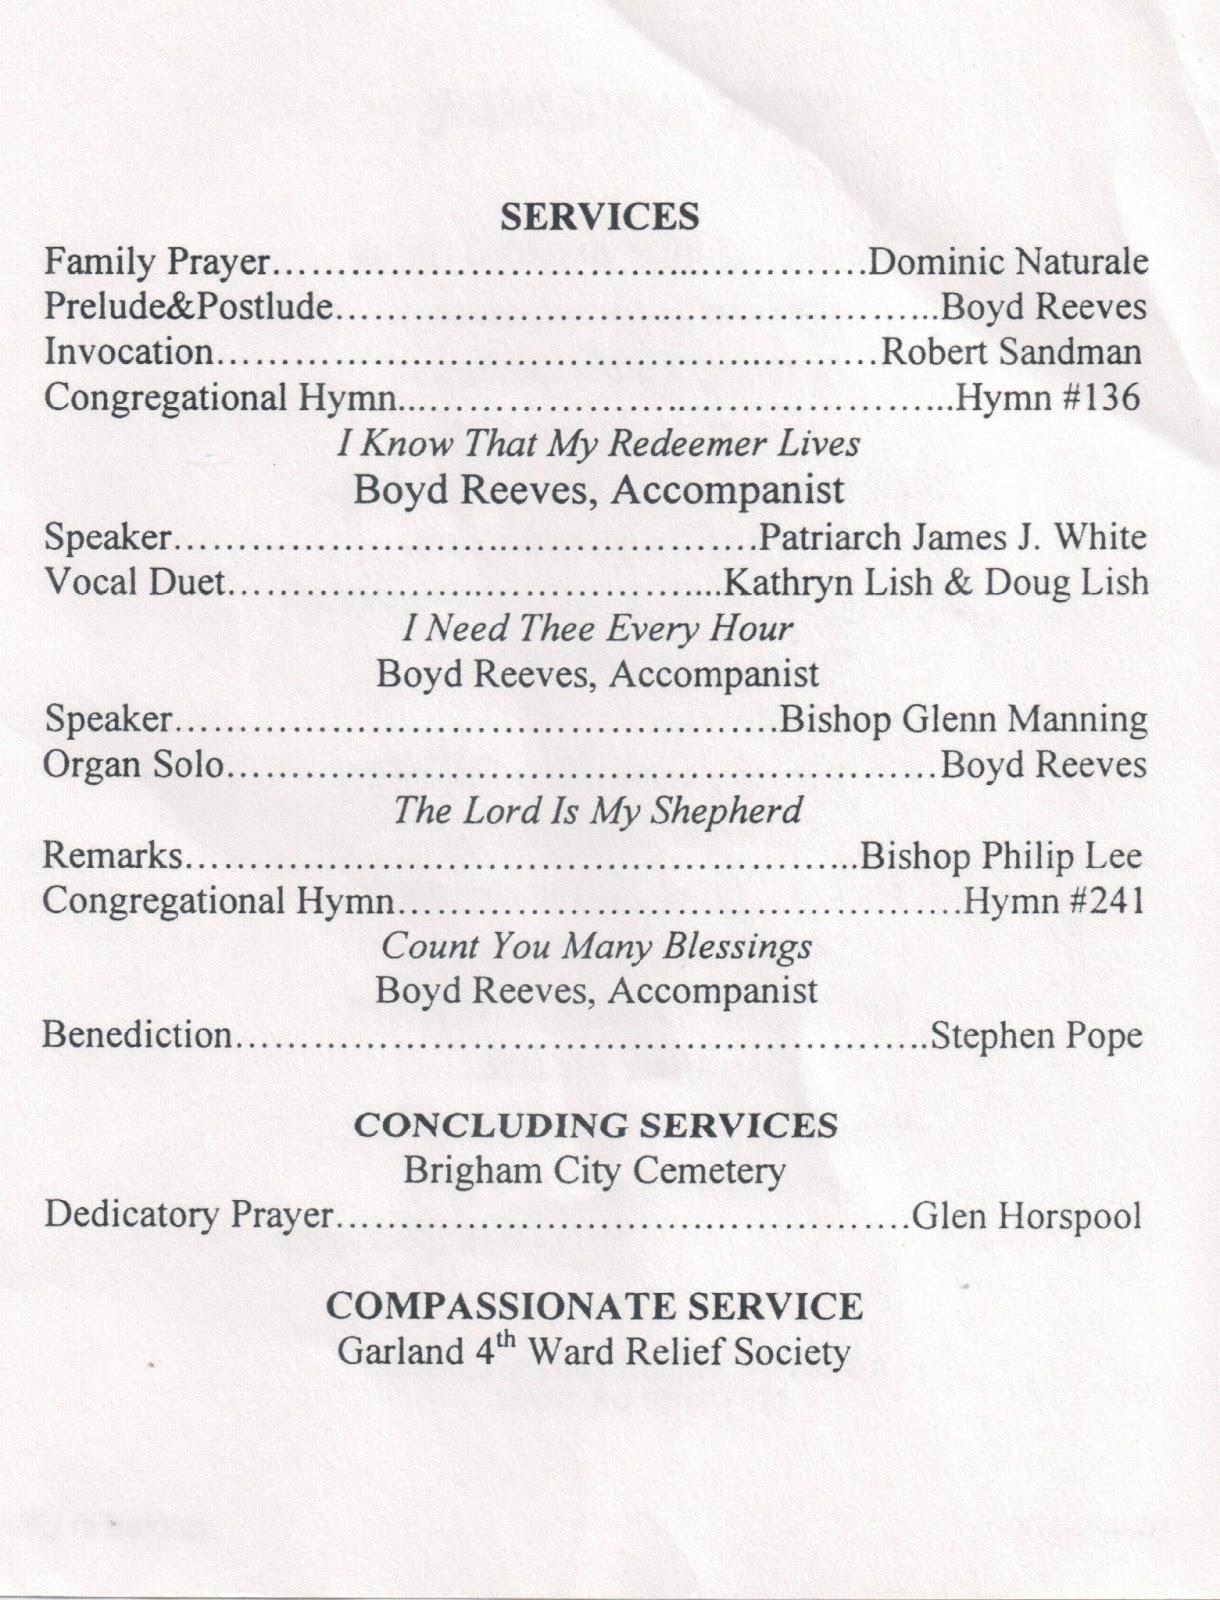 Catholic Funeral Template. funeral service template free memorial ...